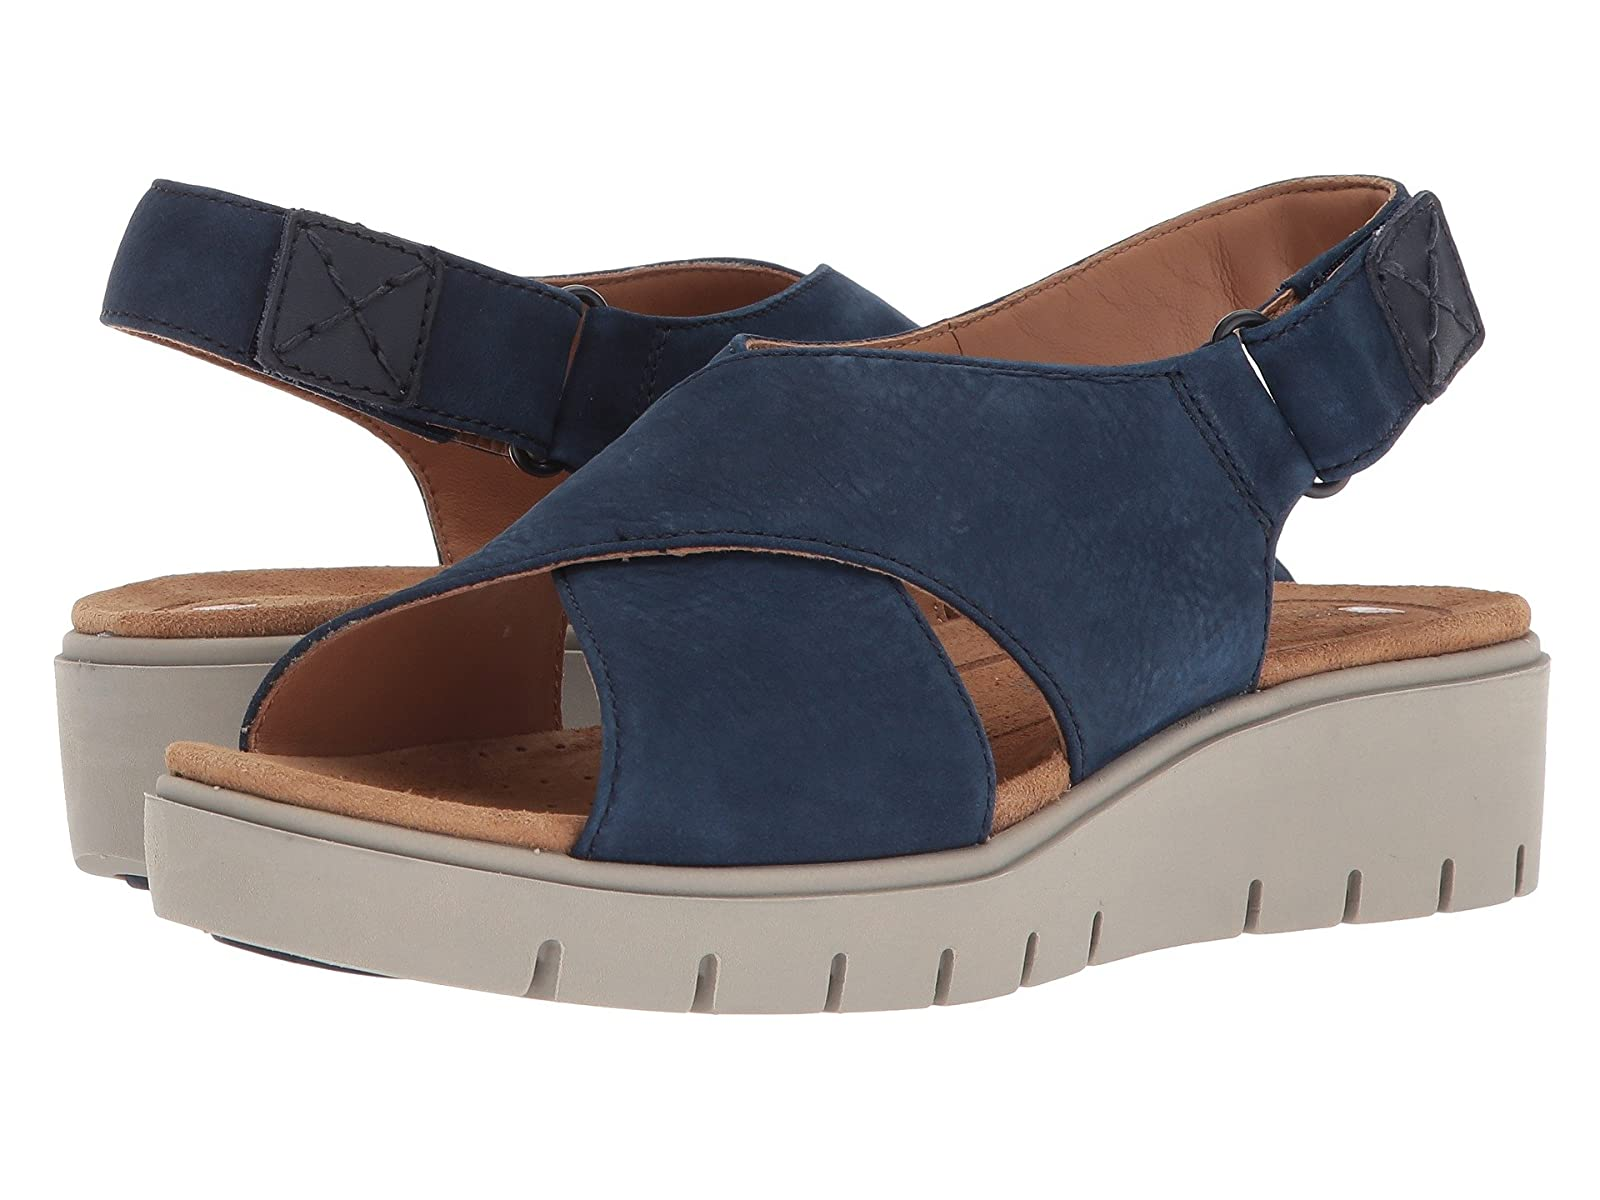 Clarks Un Karely HailCheap and distinctive eye-catching shoes